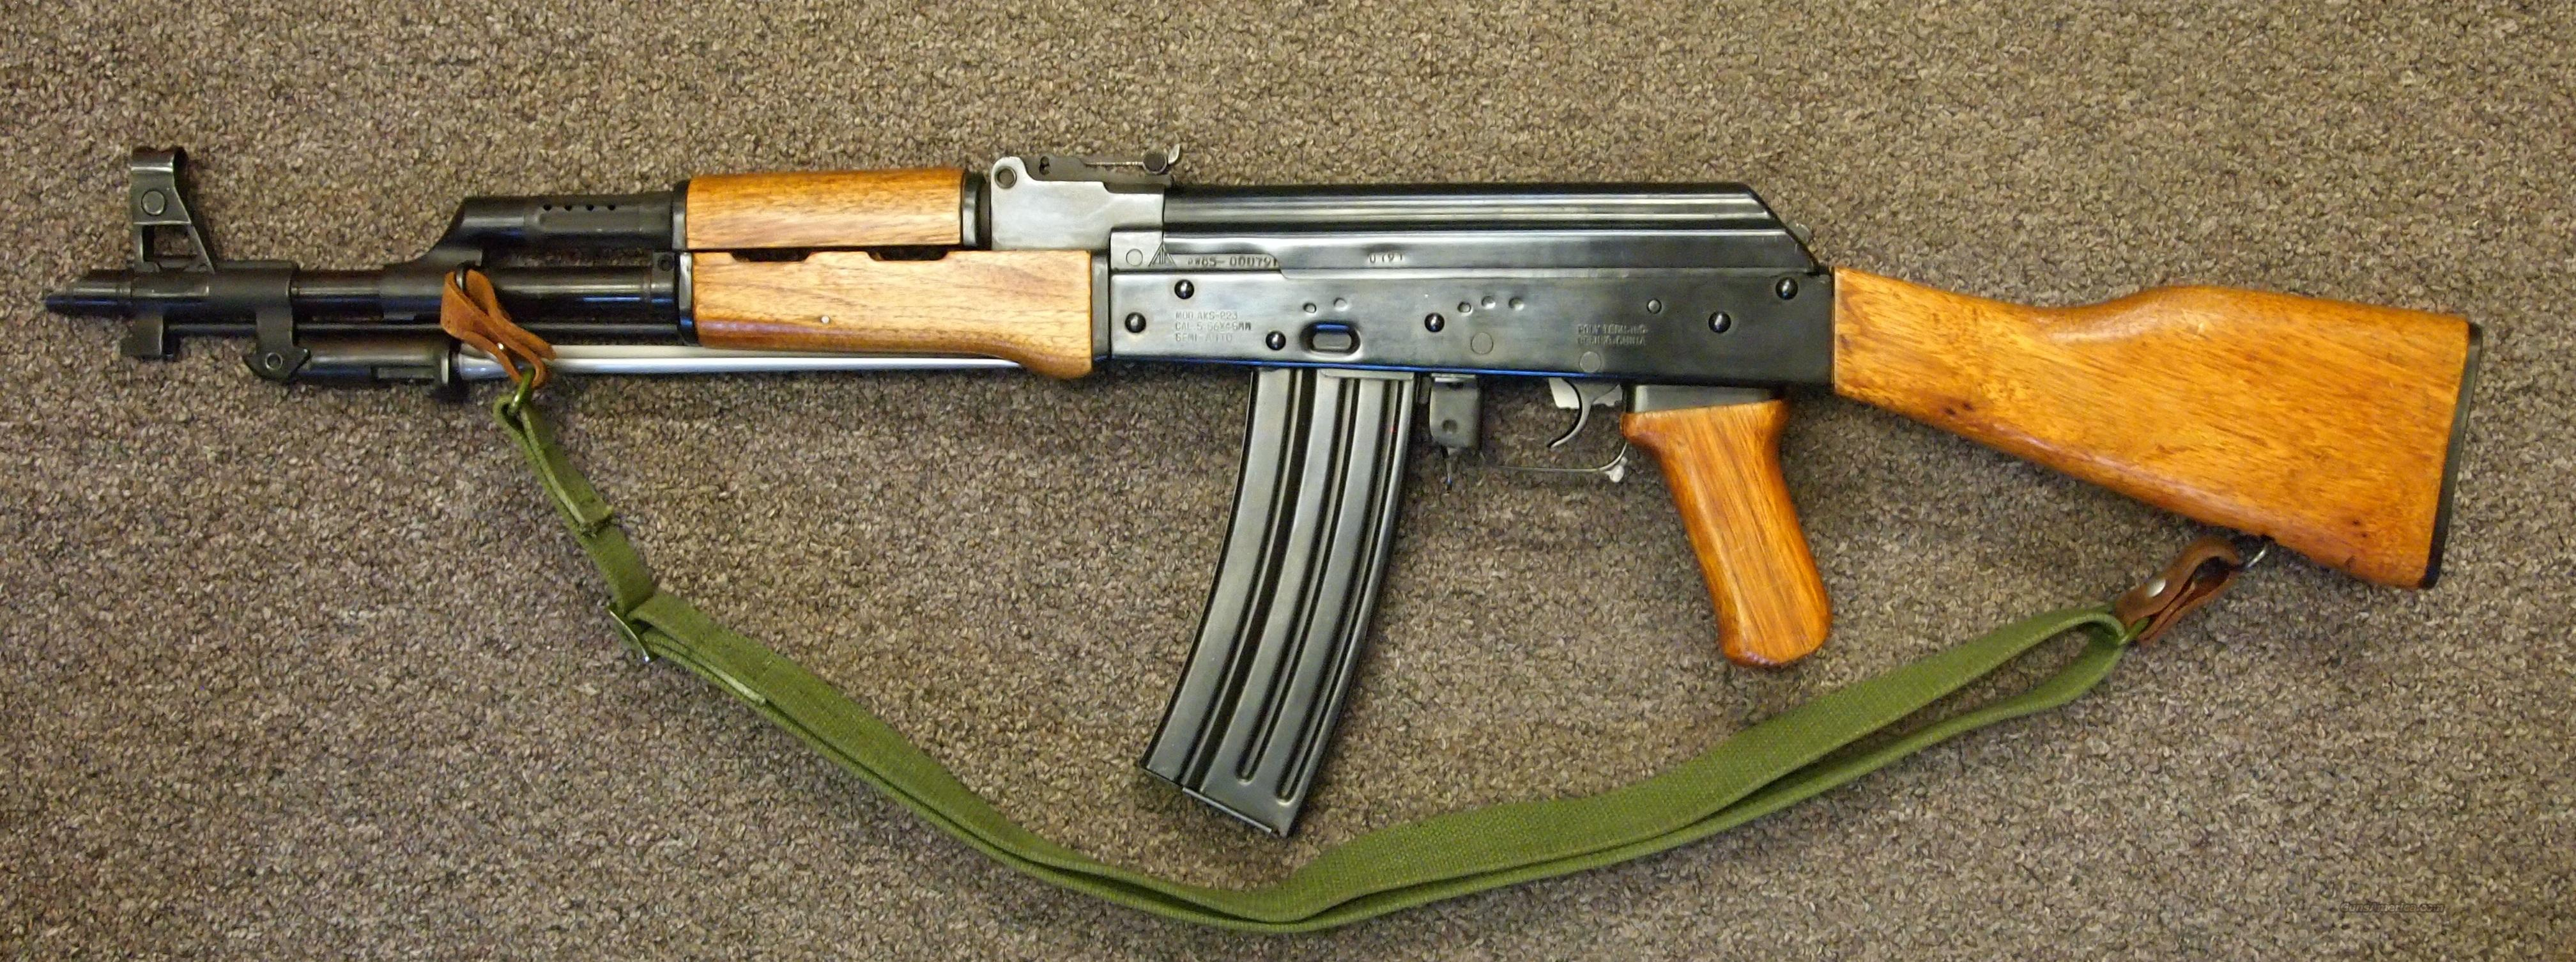 Poly Tech AKS-223 5.56 Pre-Ban  Guns > Rifles > AK-47 Rifles (and copies) > Full Stock